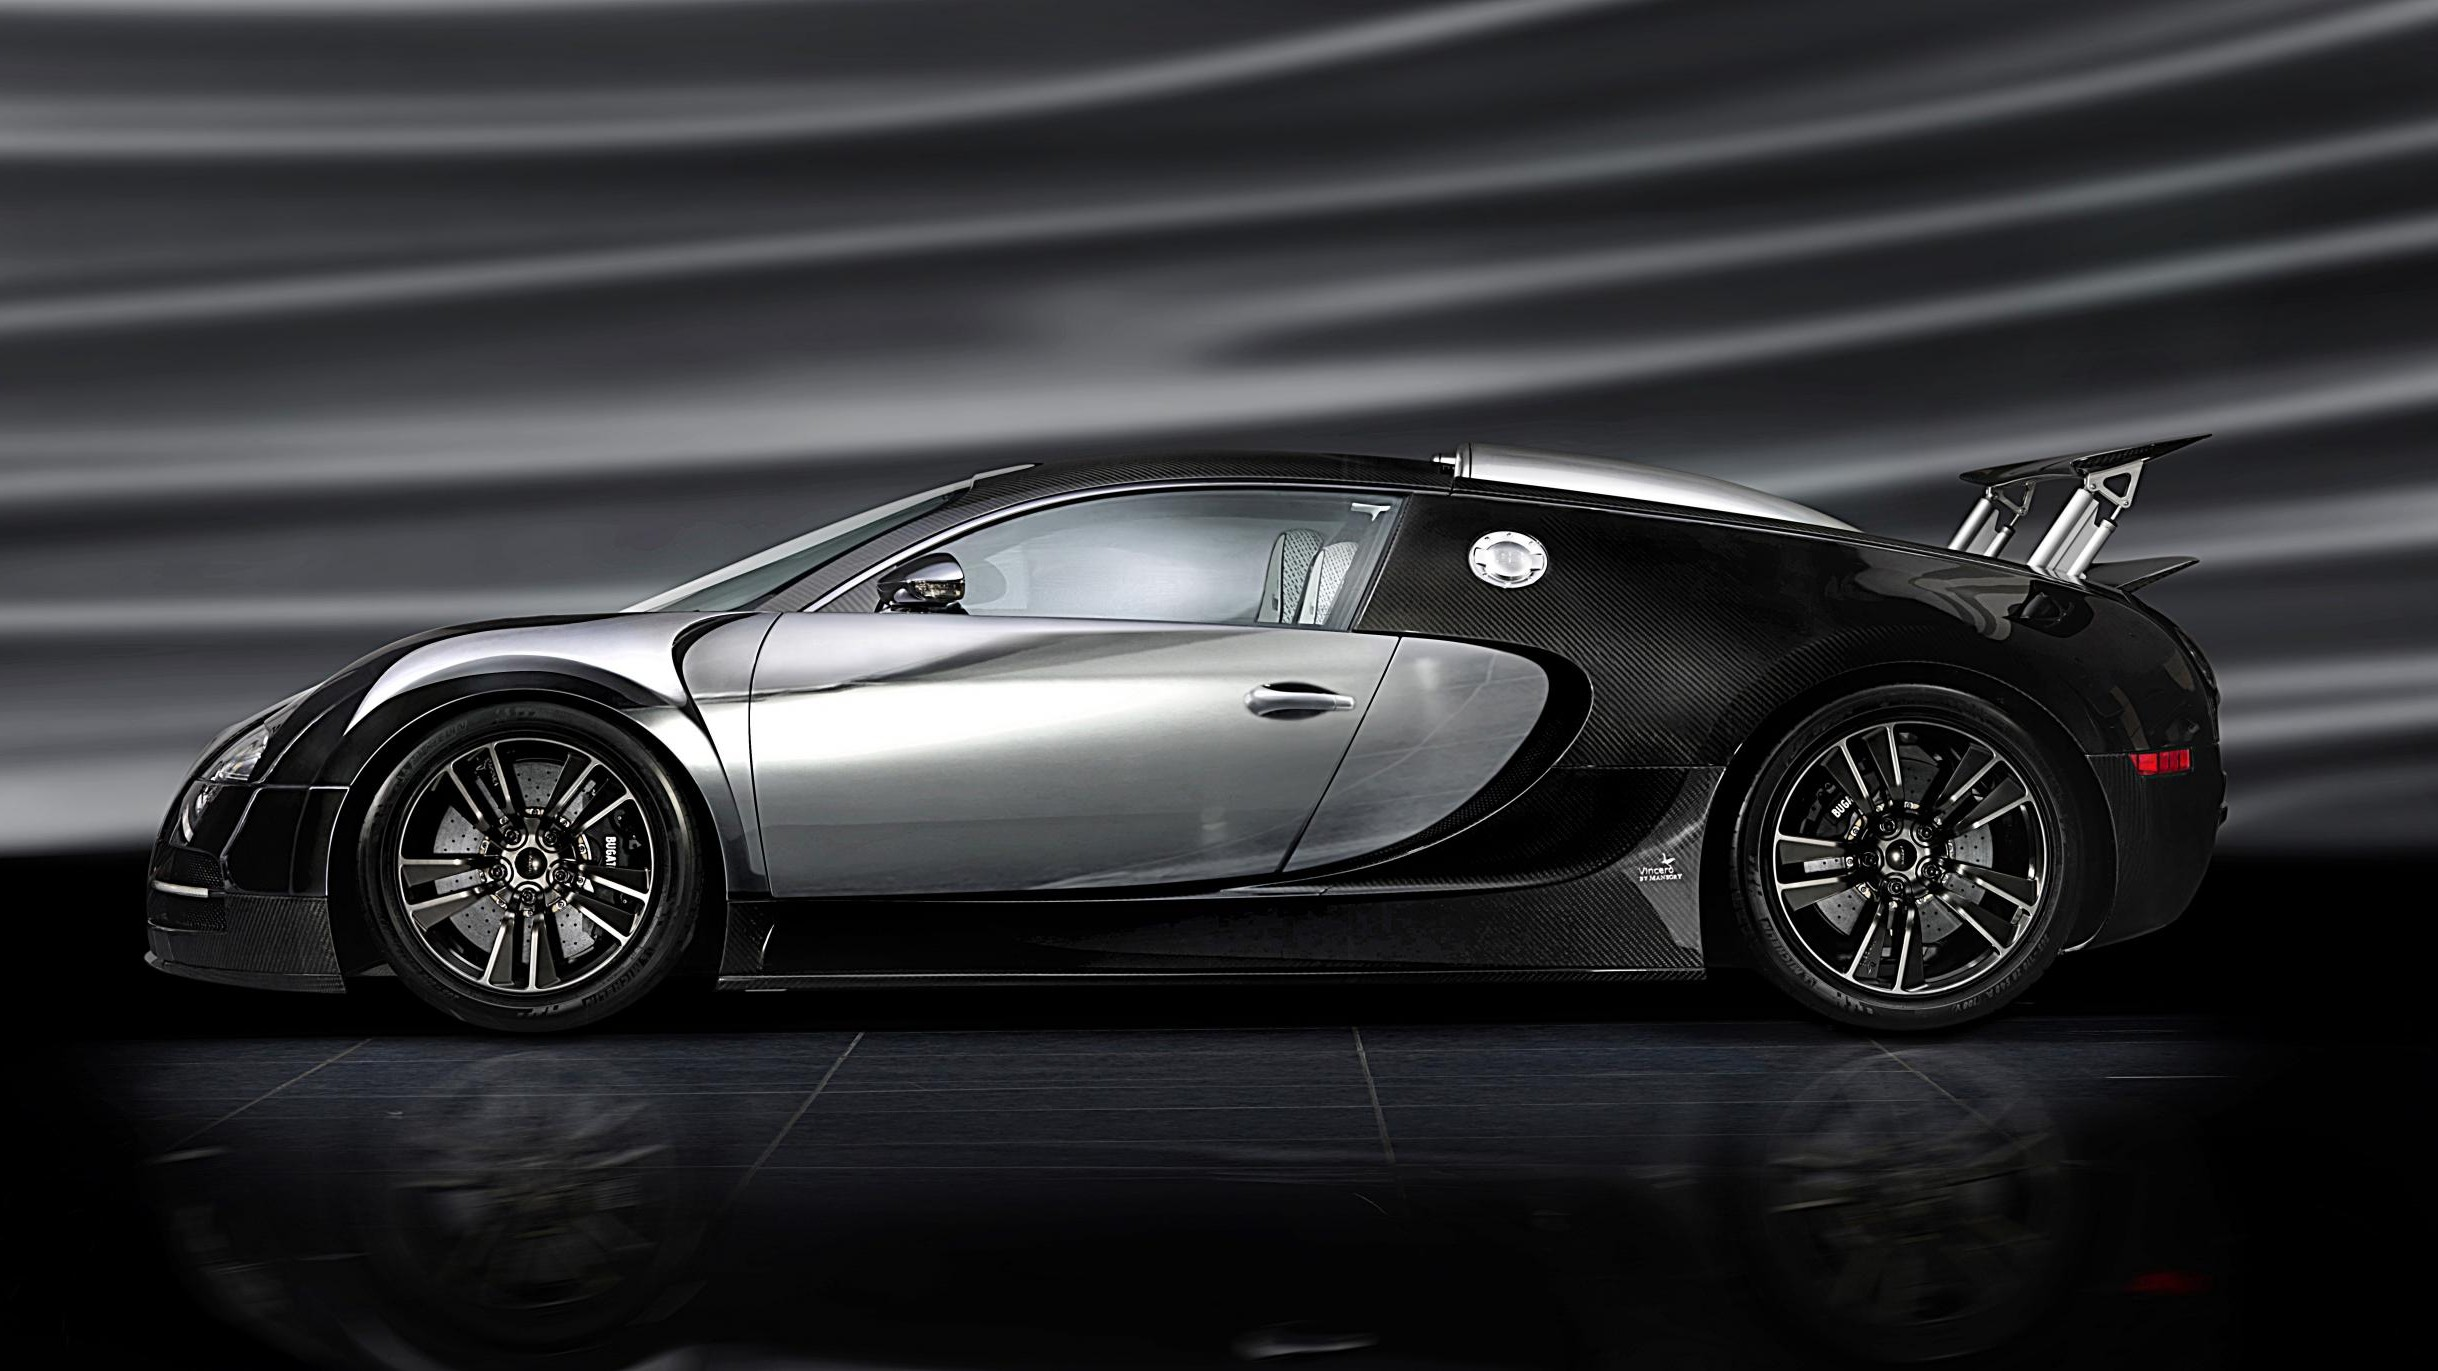 MANSORY-Vincero-ext-03-5369 Exciting Bugatti Veyron Zero to Sixty Cars Trend